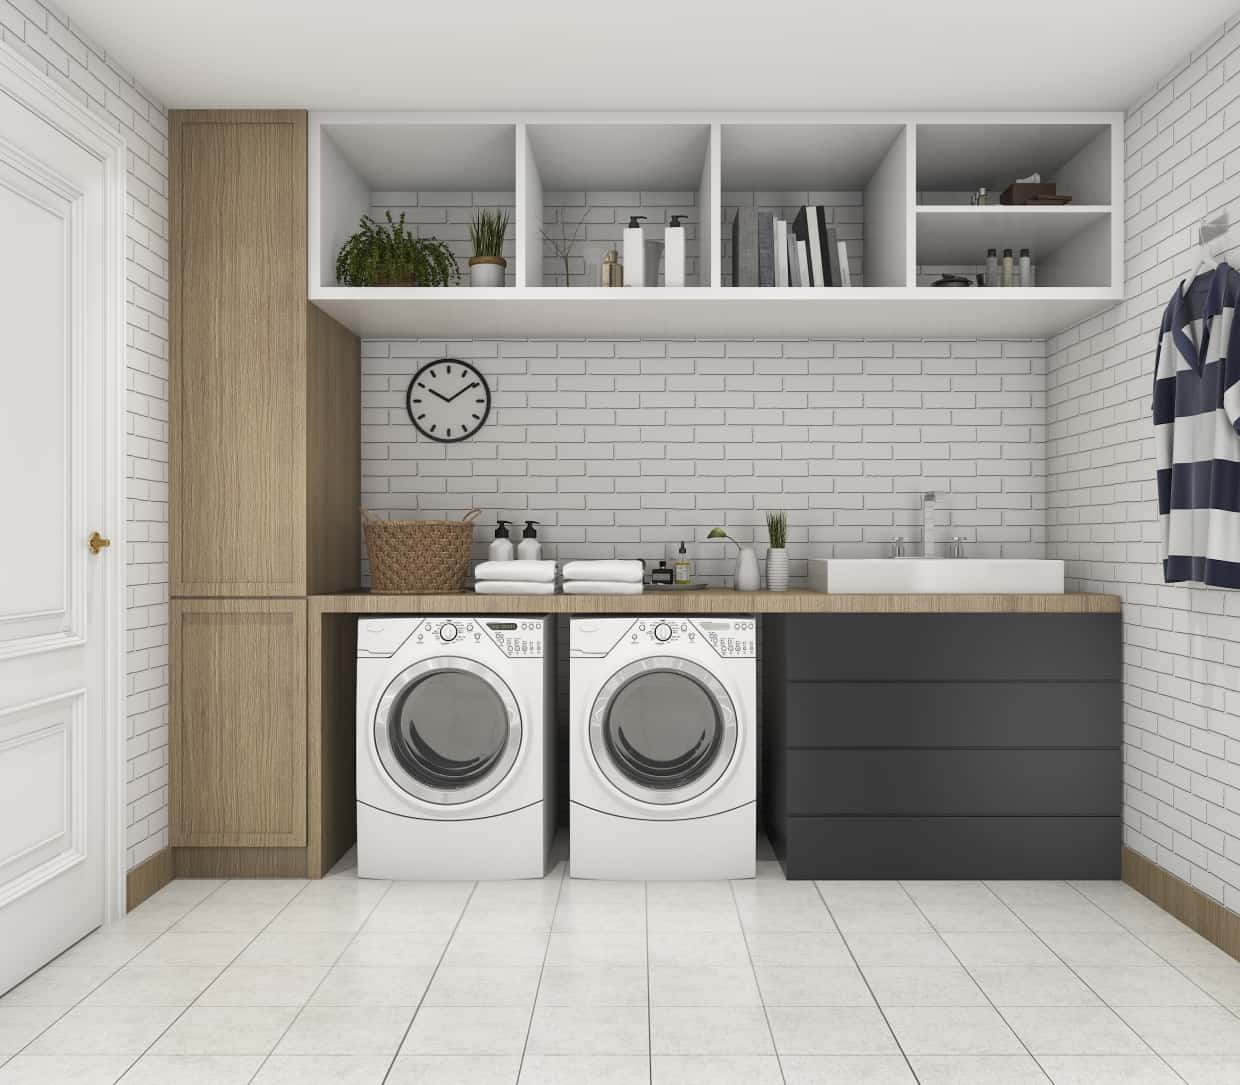 Brick Wall Design Laundry Area with Cupboards